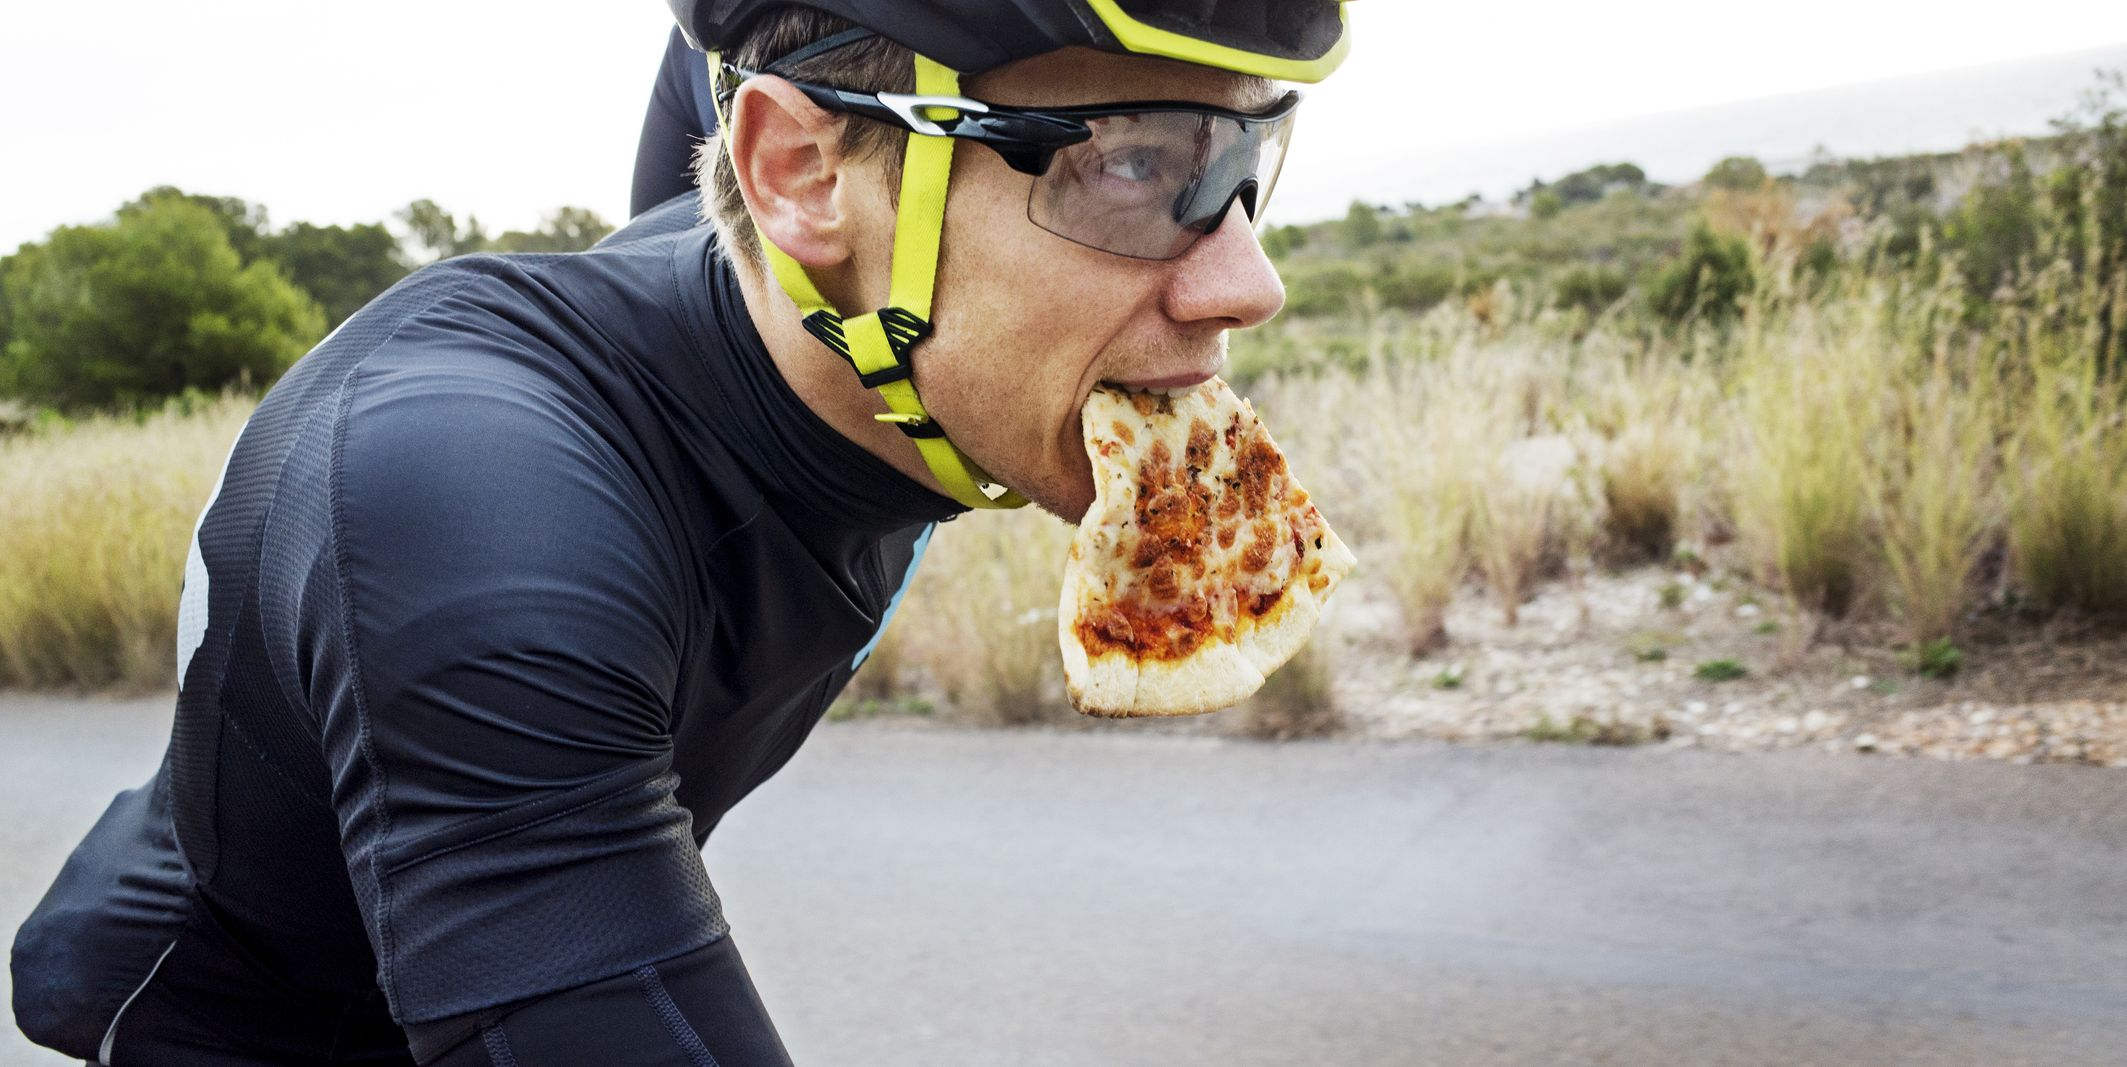 Man eating pizza while cycling on street against clear sky